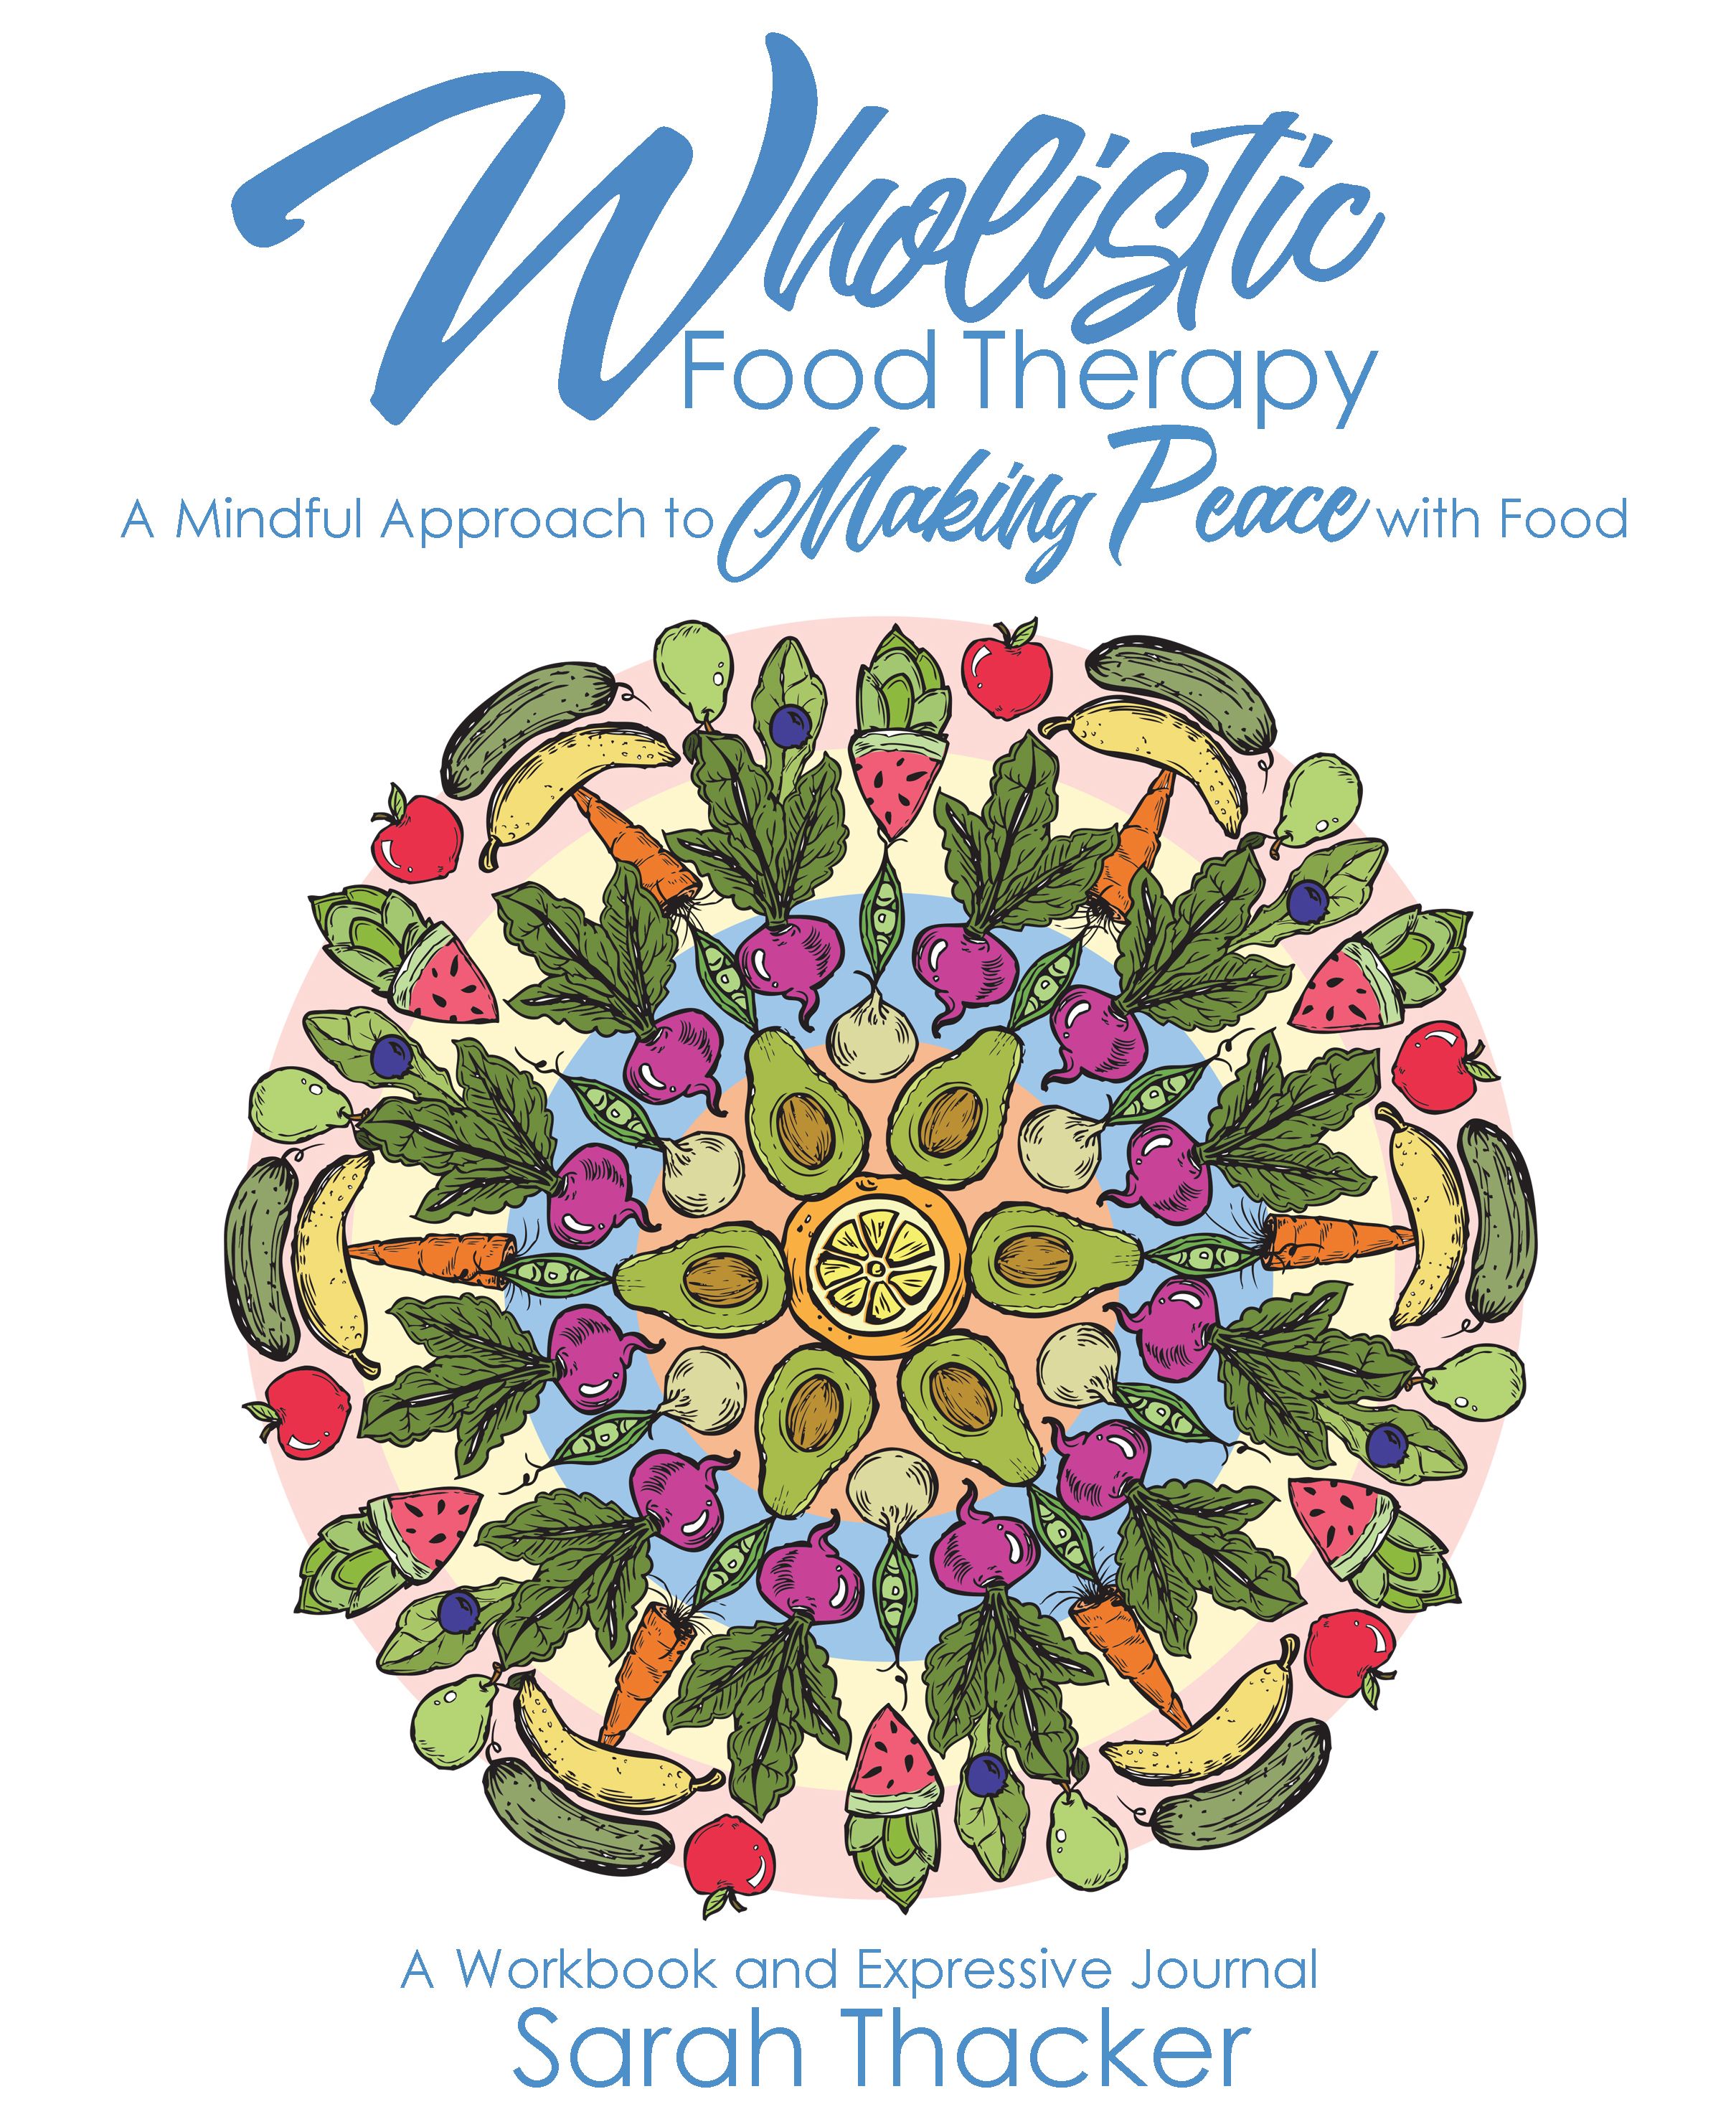 Wholistic Food Therapy by Sarah Thacker